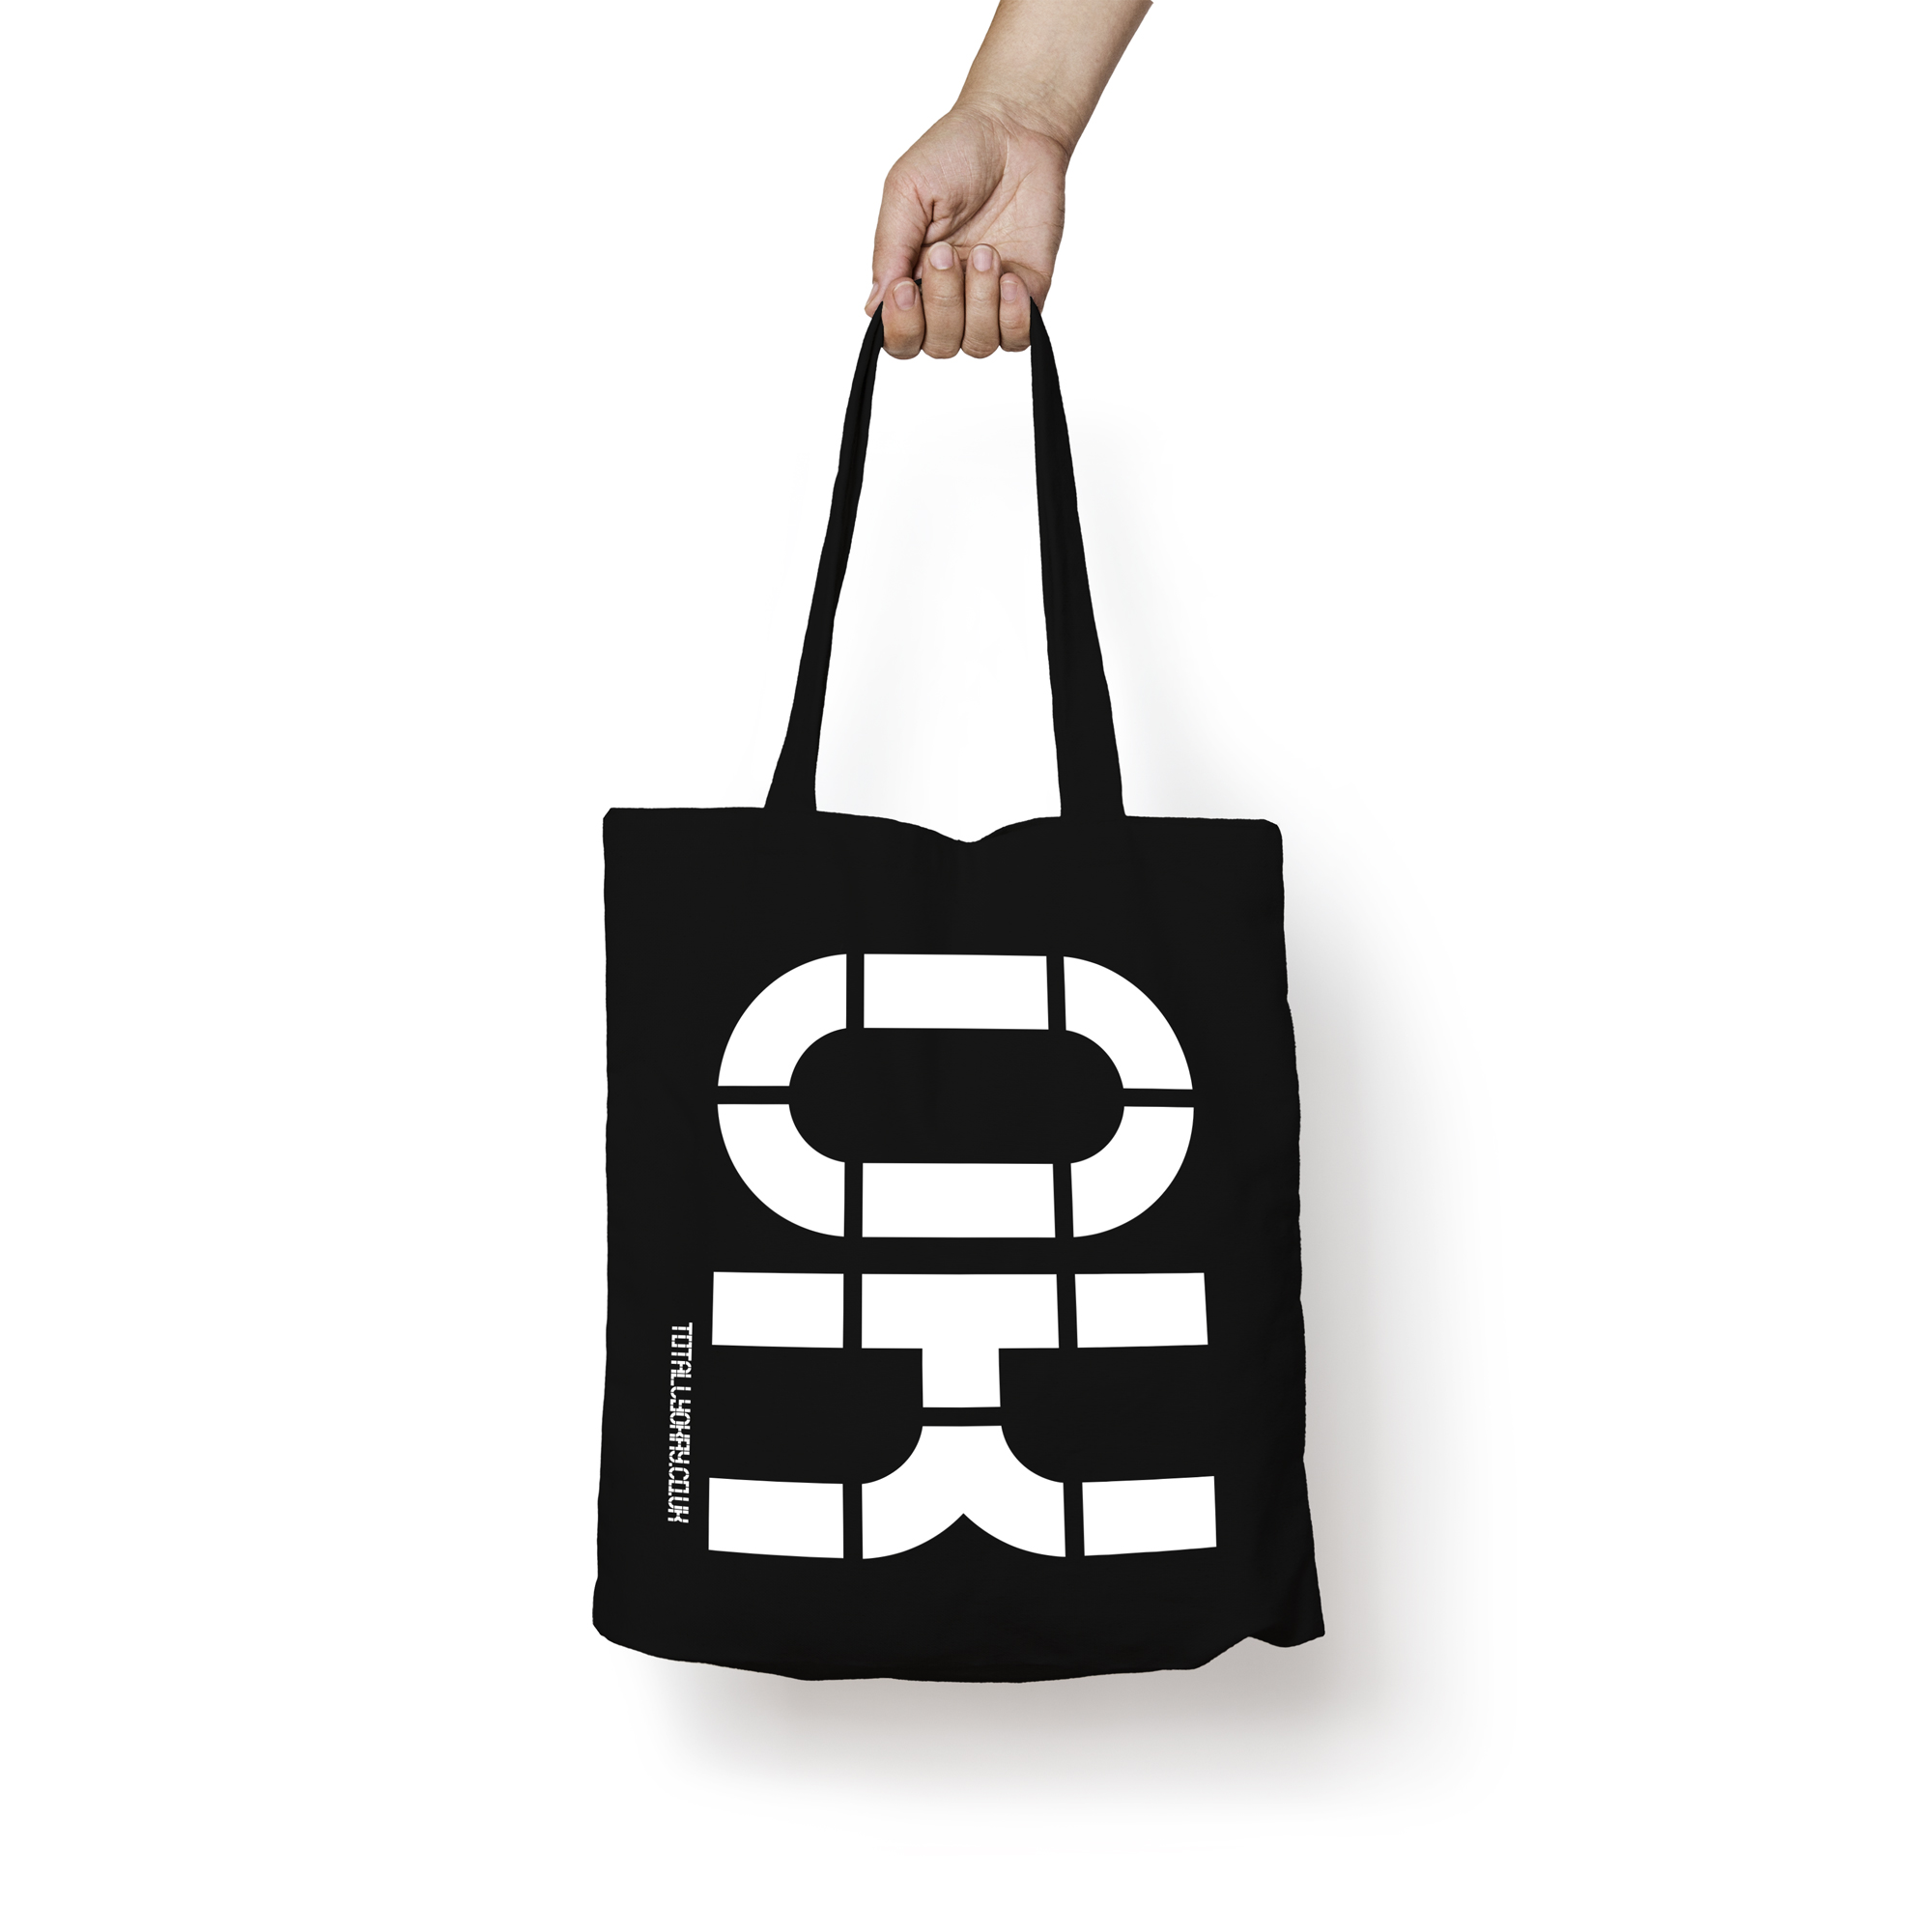 OK Dude tote bag front